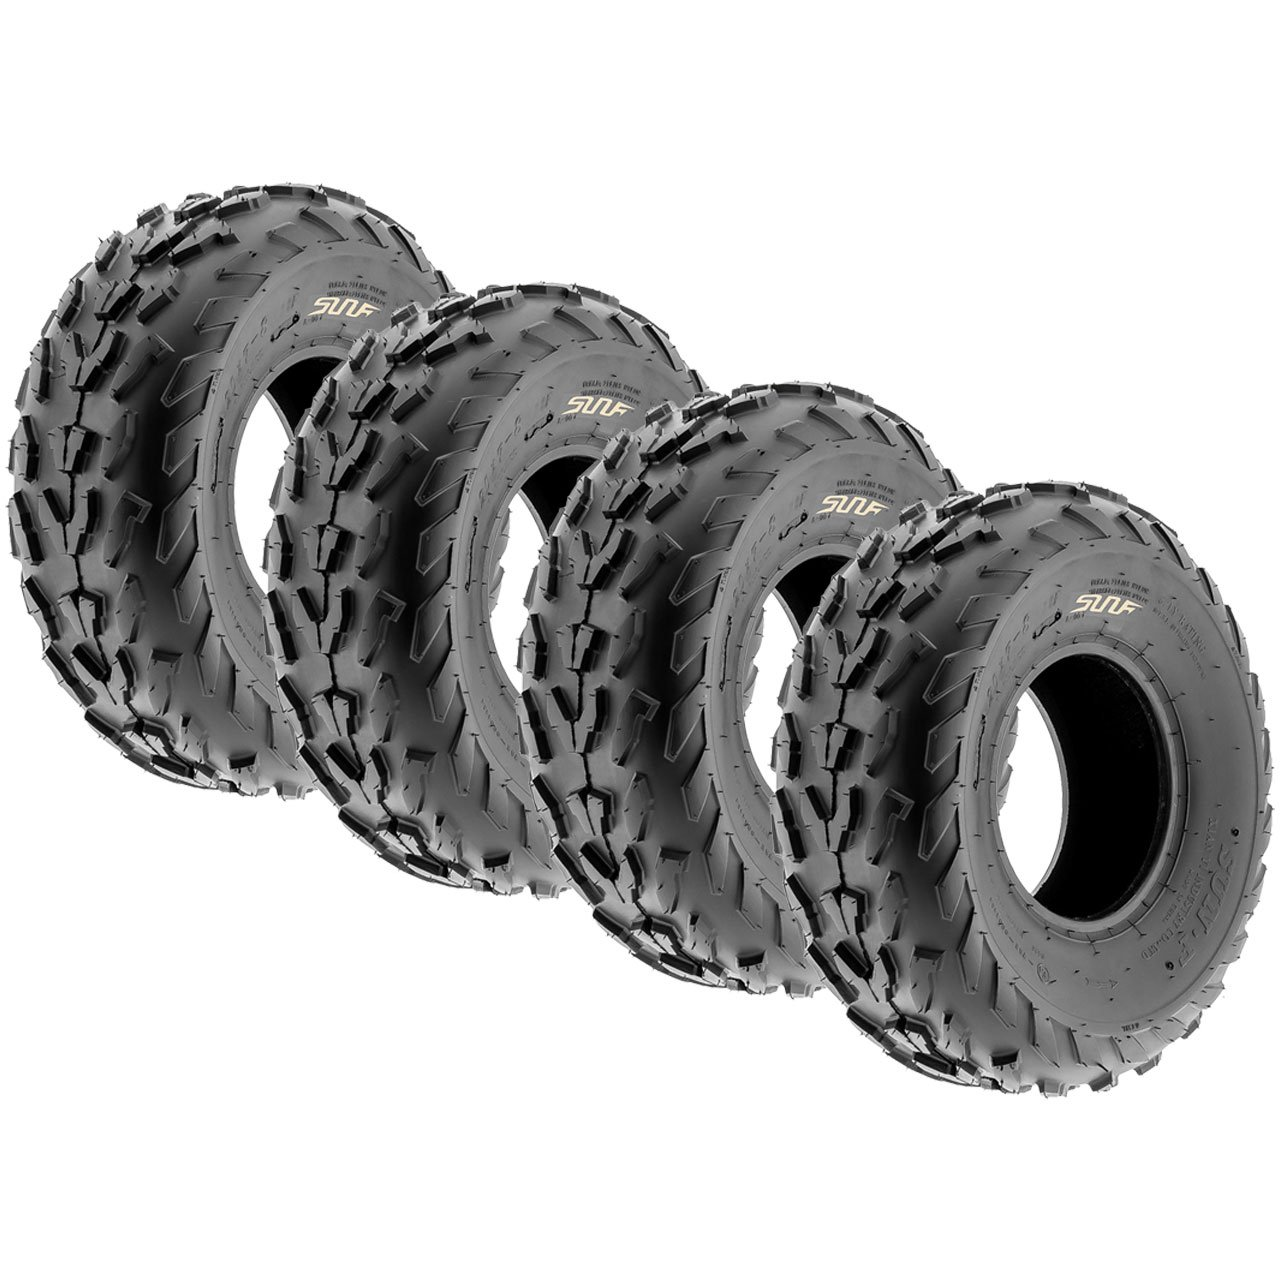 Set of 4 SunF A007 ATV Go-Kart Sport Tires 18x7-7 Front & 18x7-7 Rear, 4 PR, Directional Knobby Tread